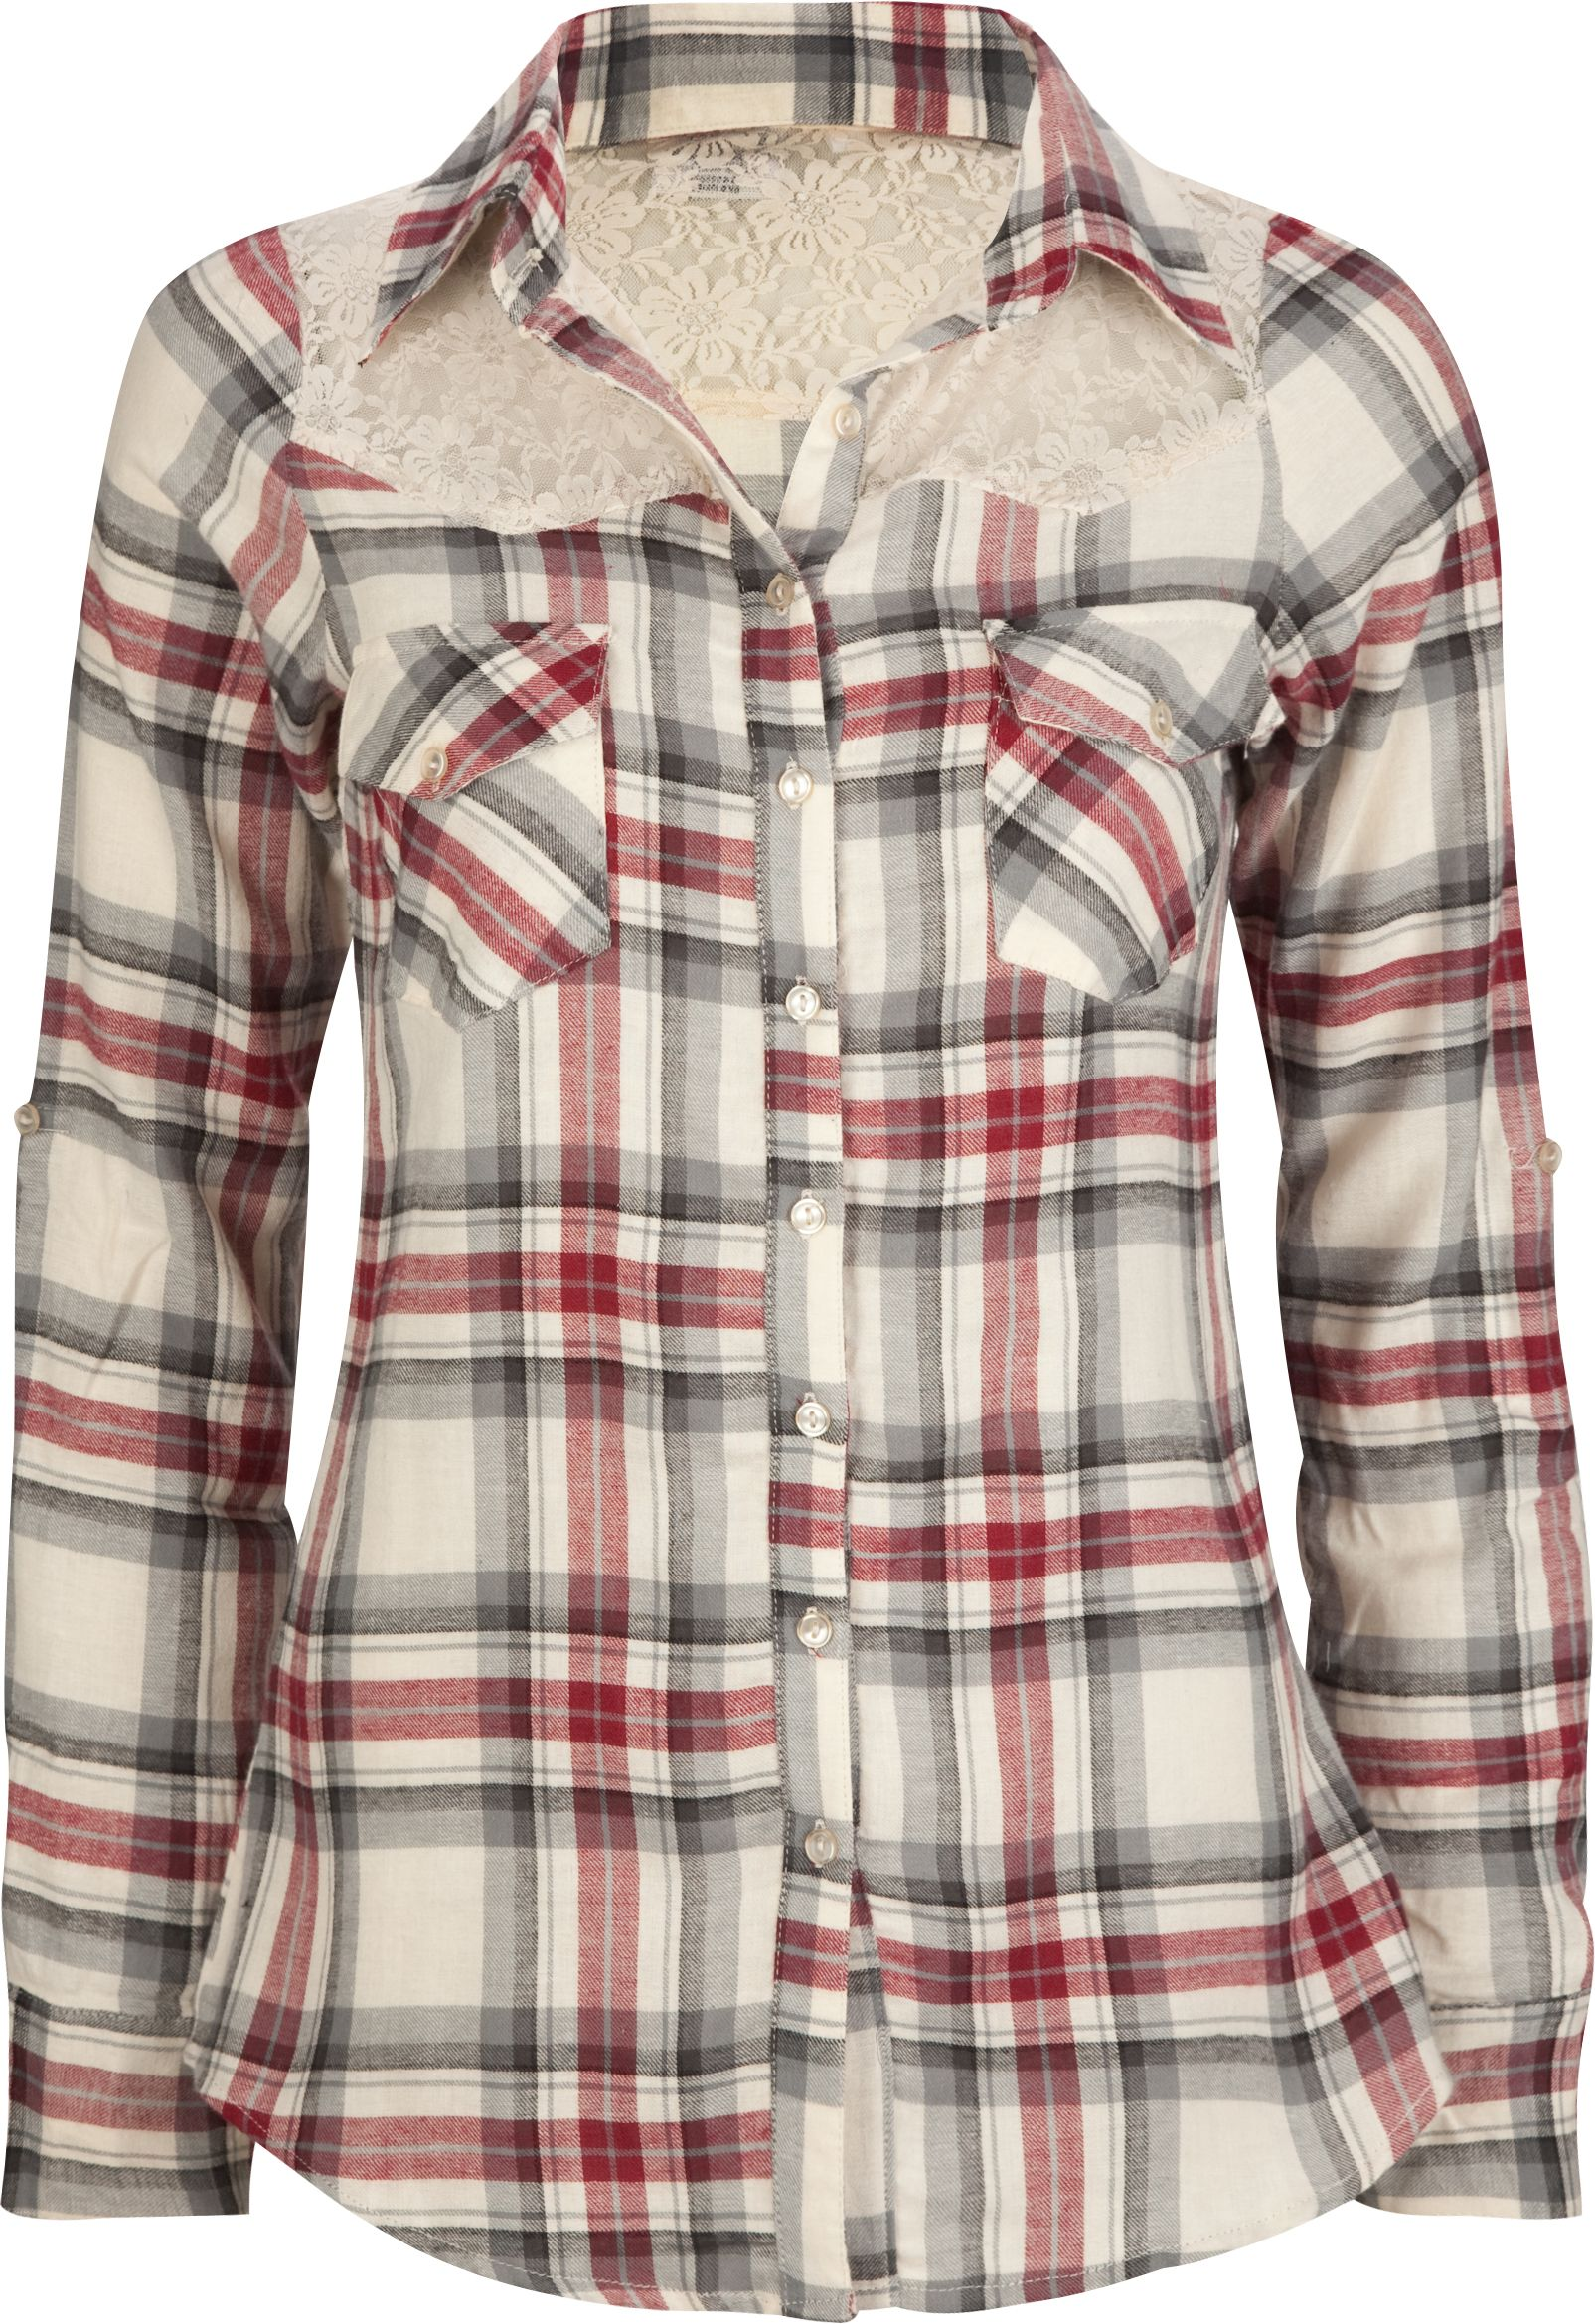 Flannel shirt outfit women  Tillys  Products I Love  Pinterest  Flannel shirts Flannels